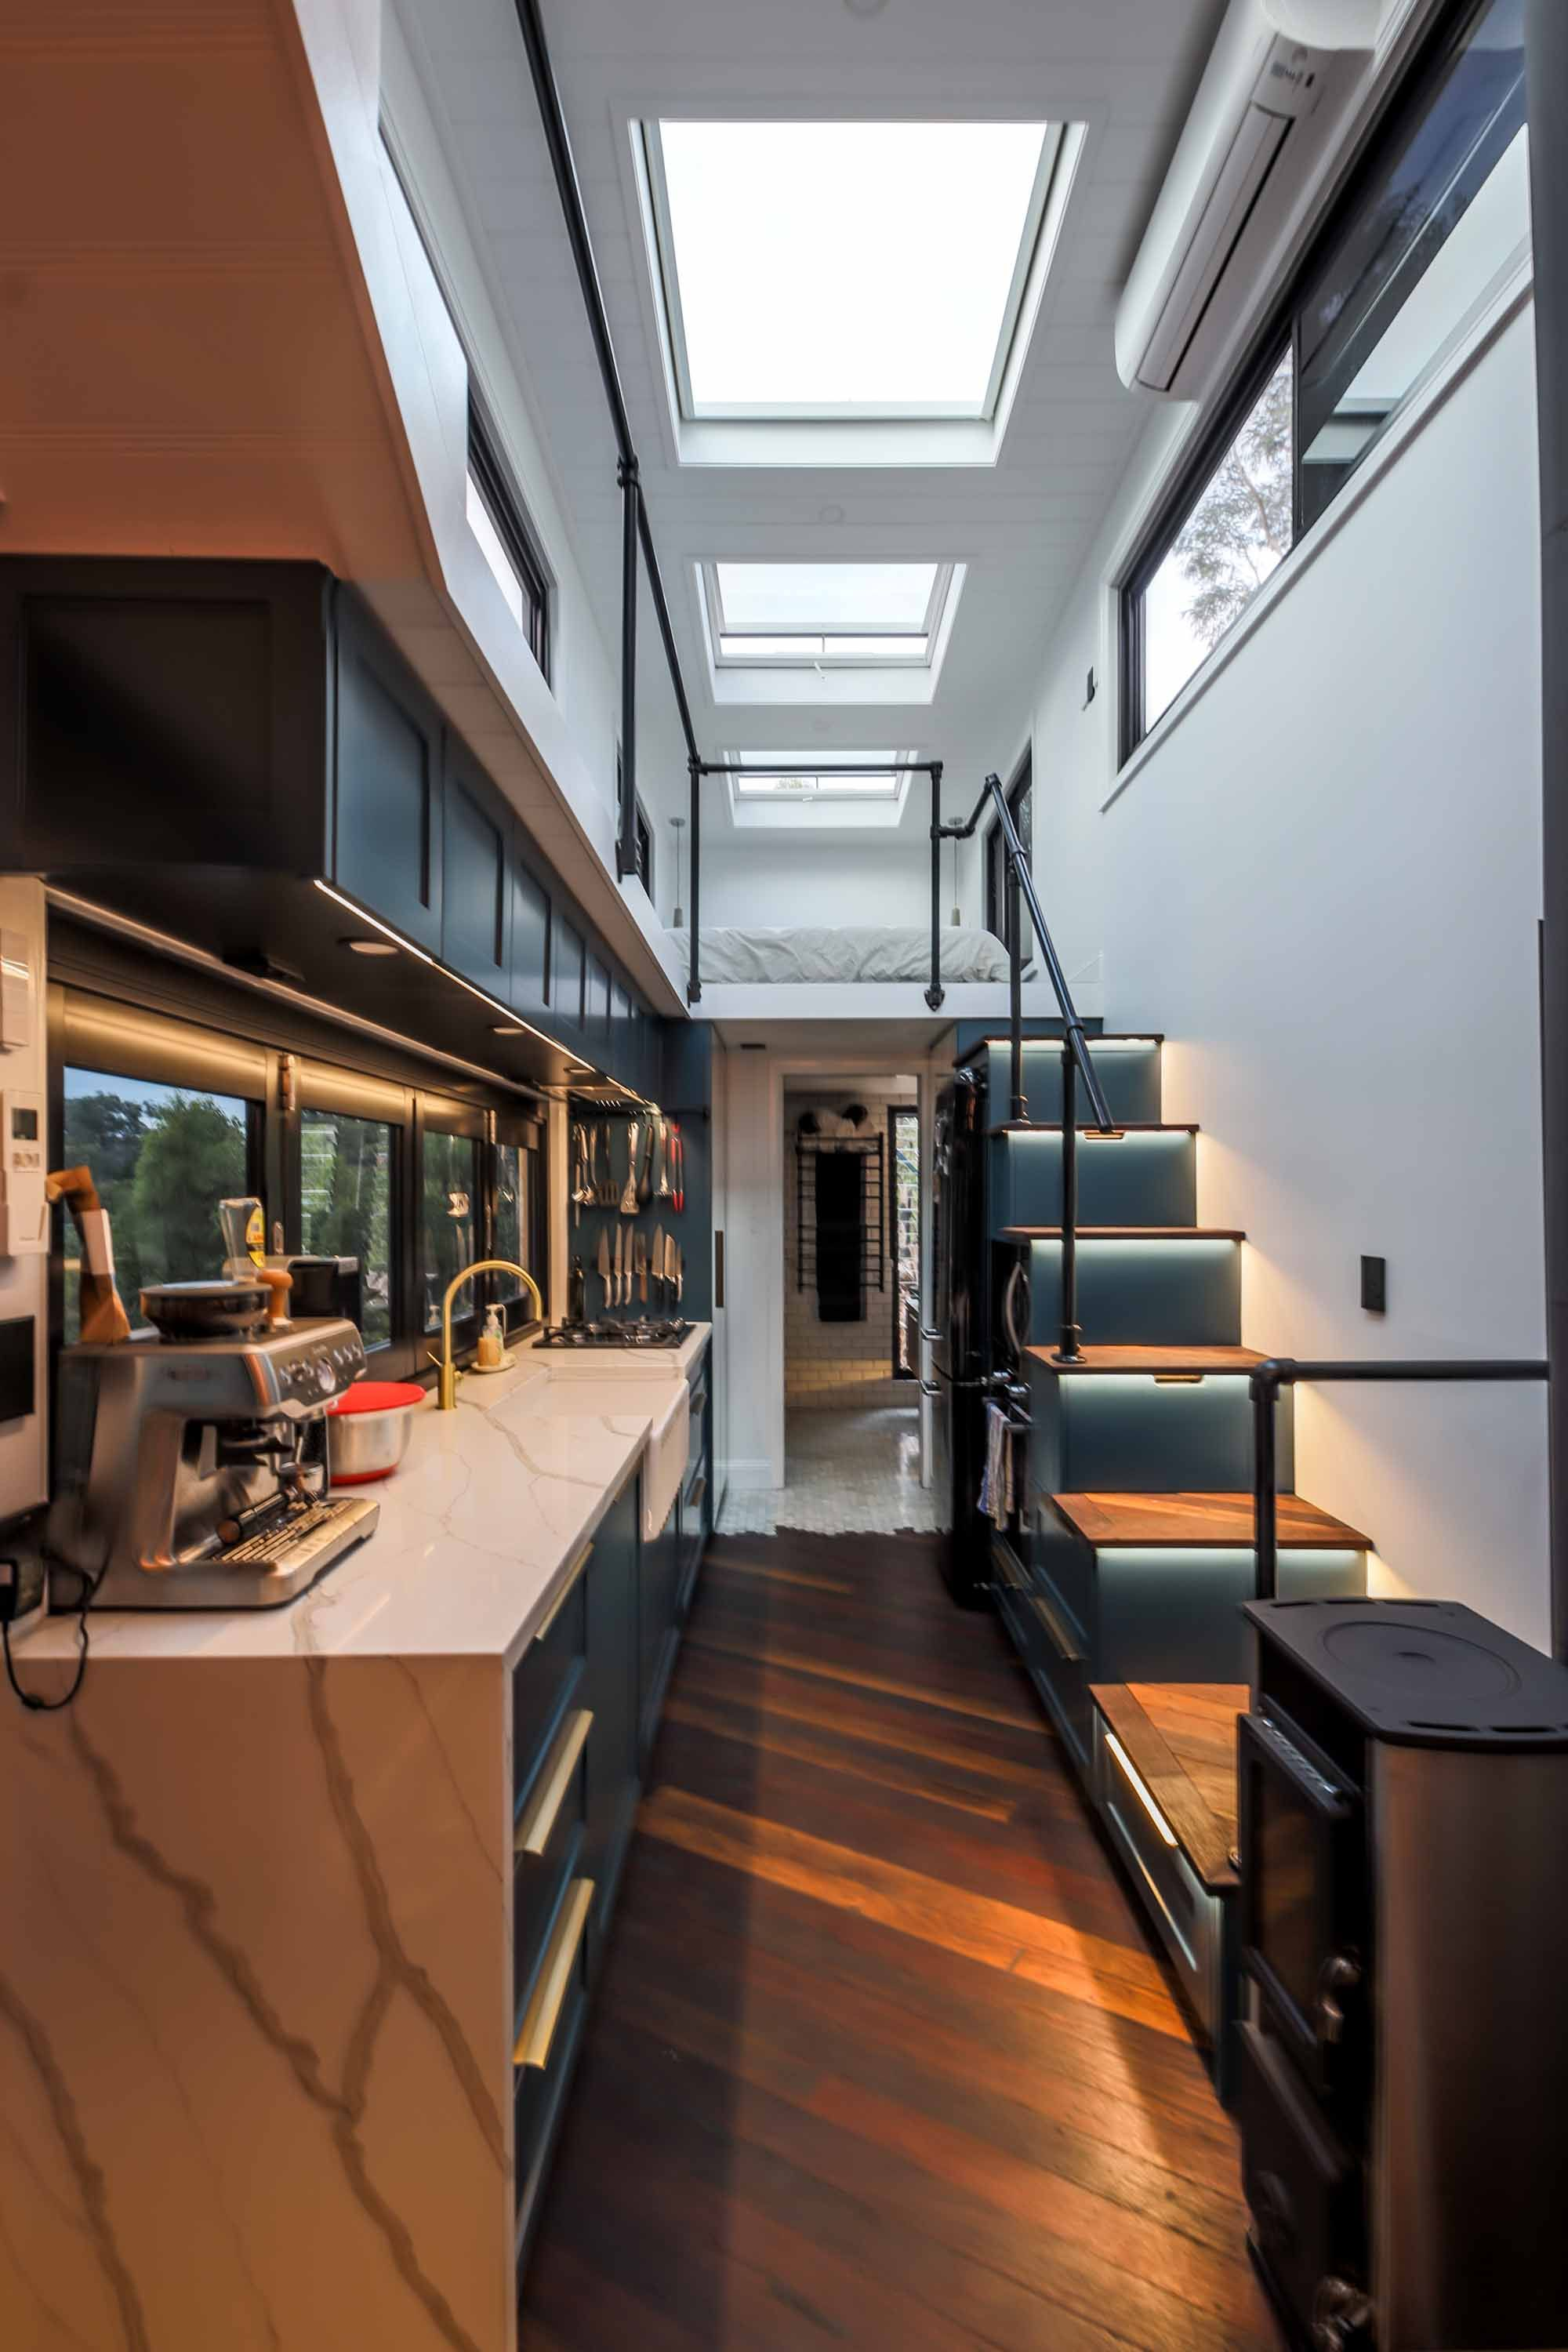 Couple Builds Sleek Modern Tiny Home People Are Calling It Most